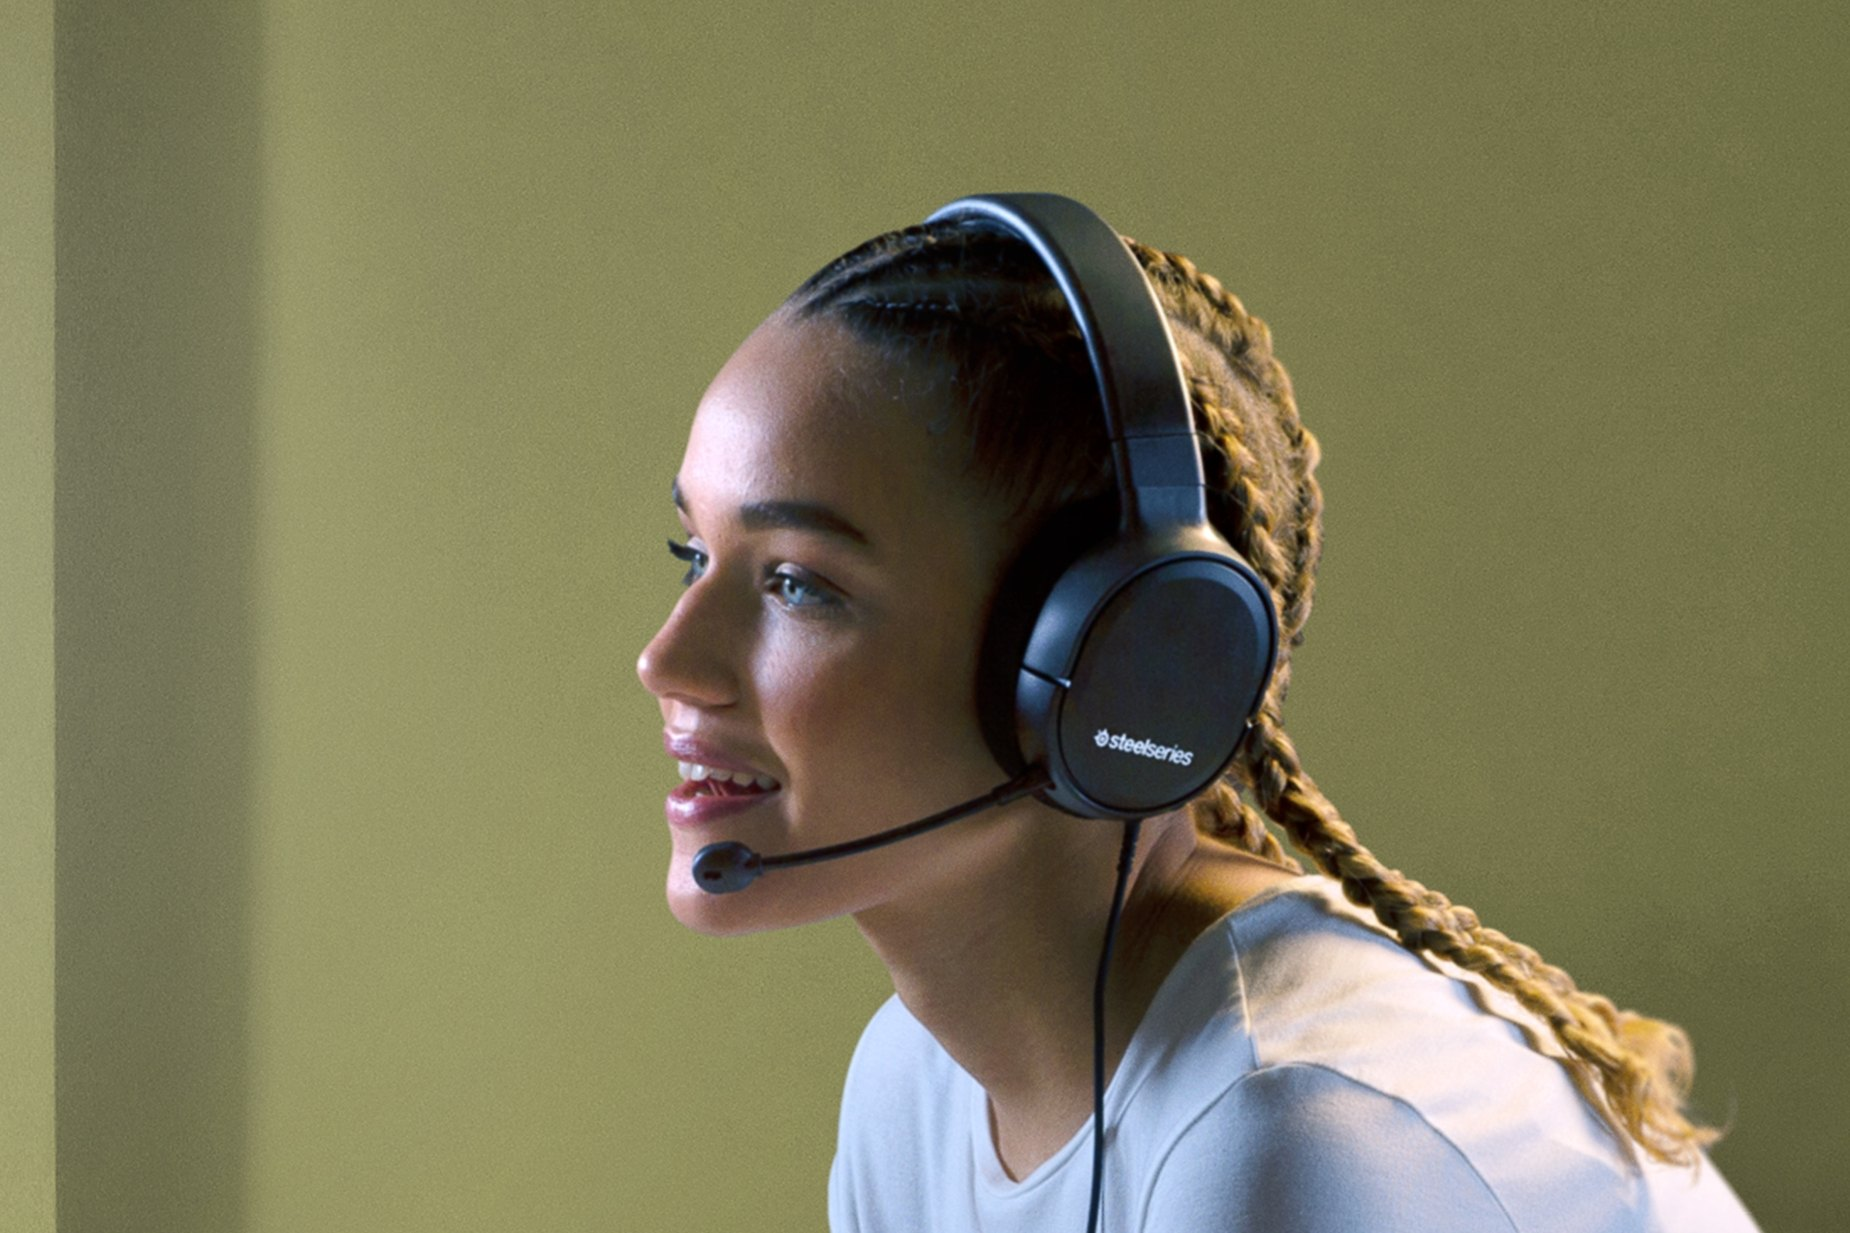 Gamer chatting with teammates via the Arctis 1 gaming headset microphone.